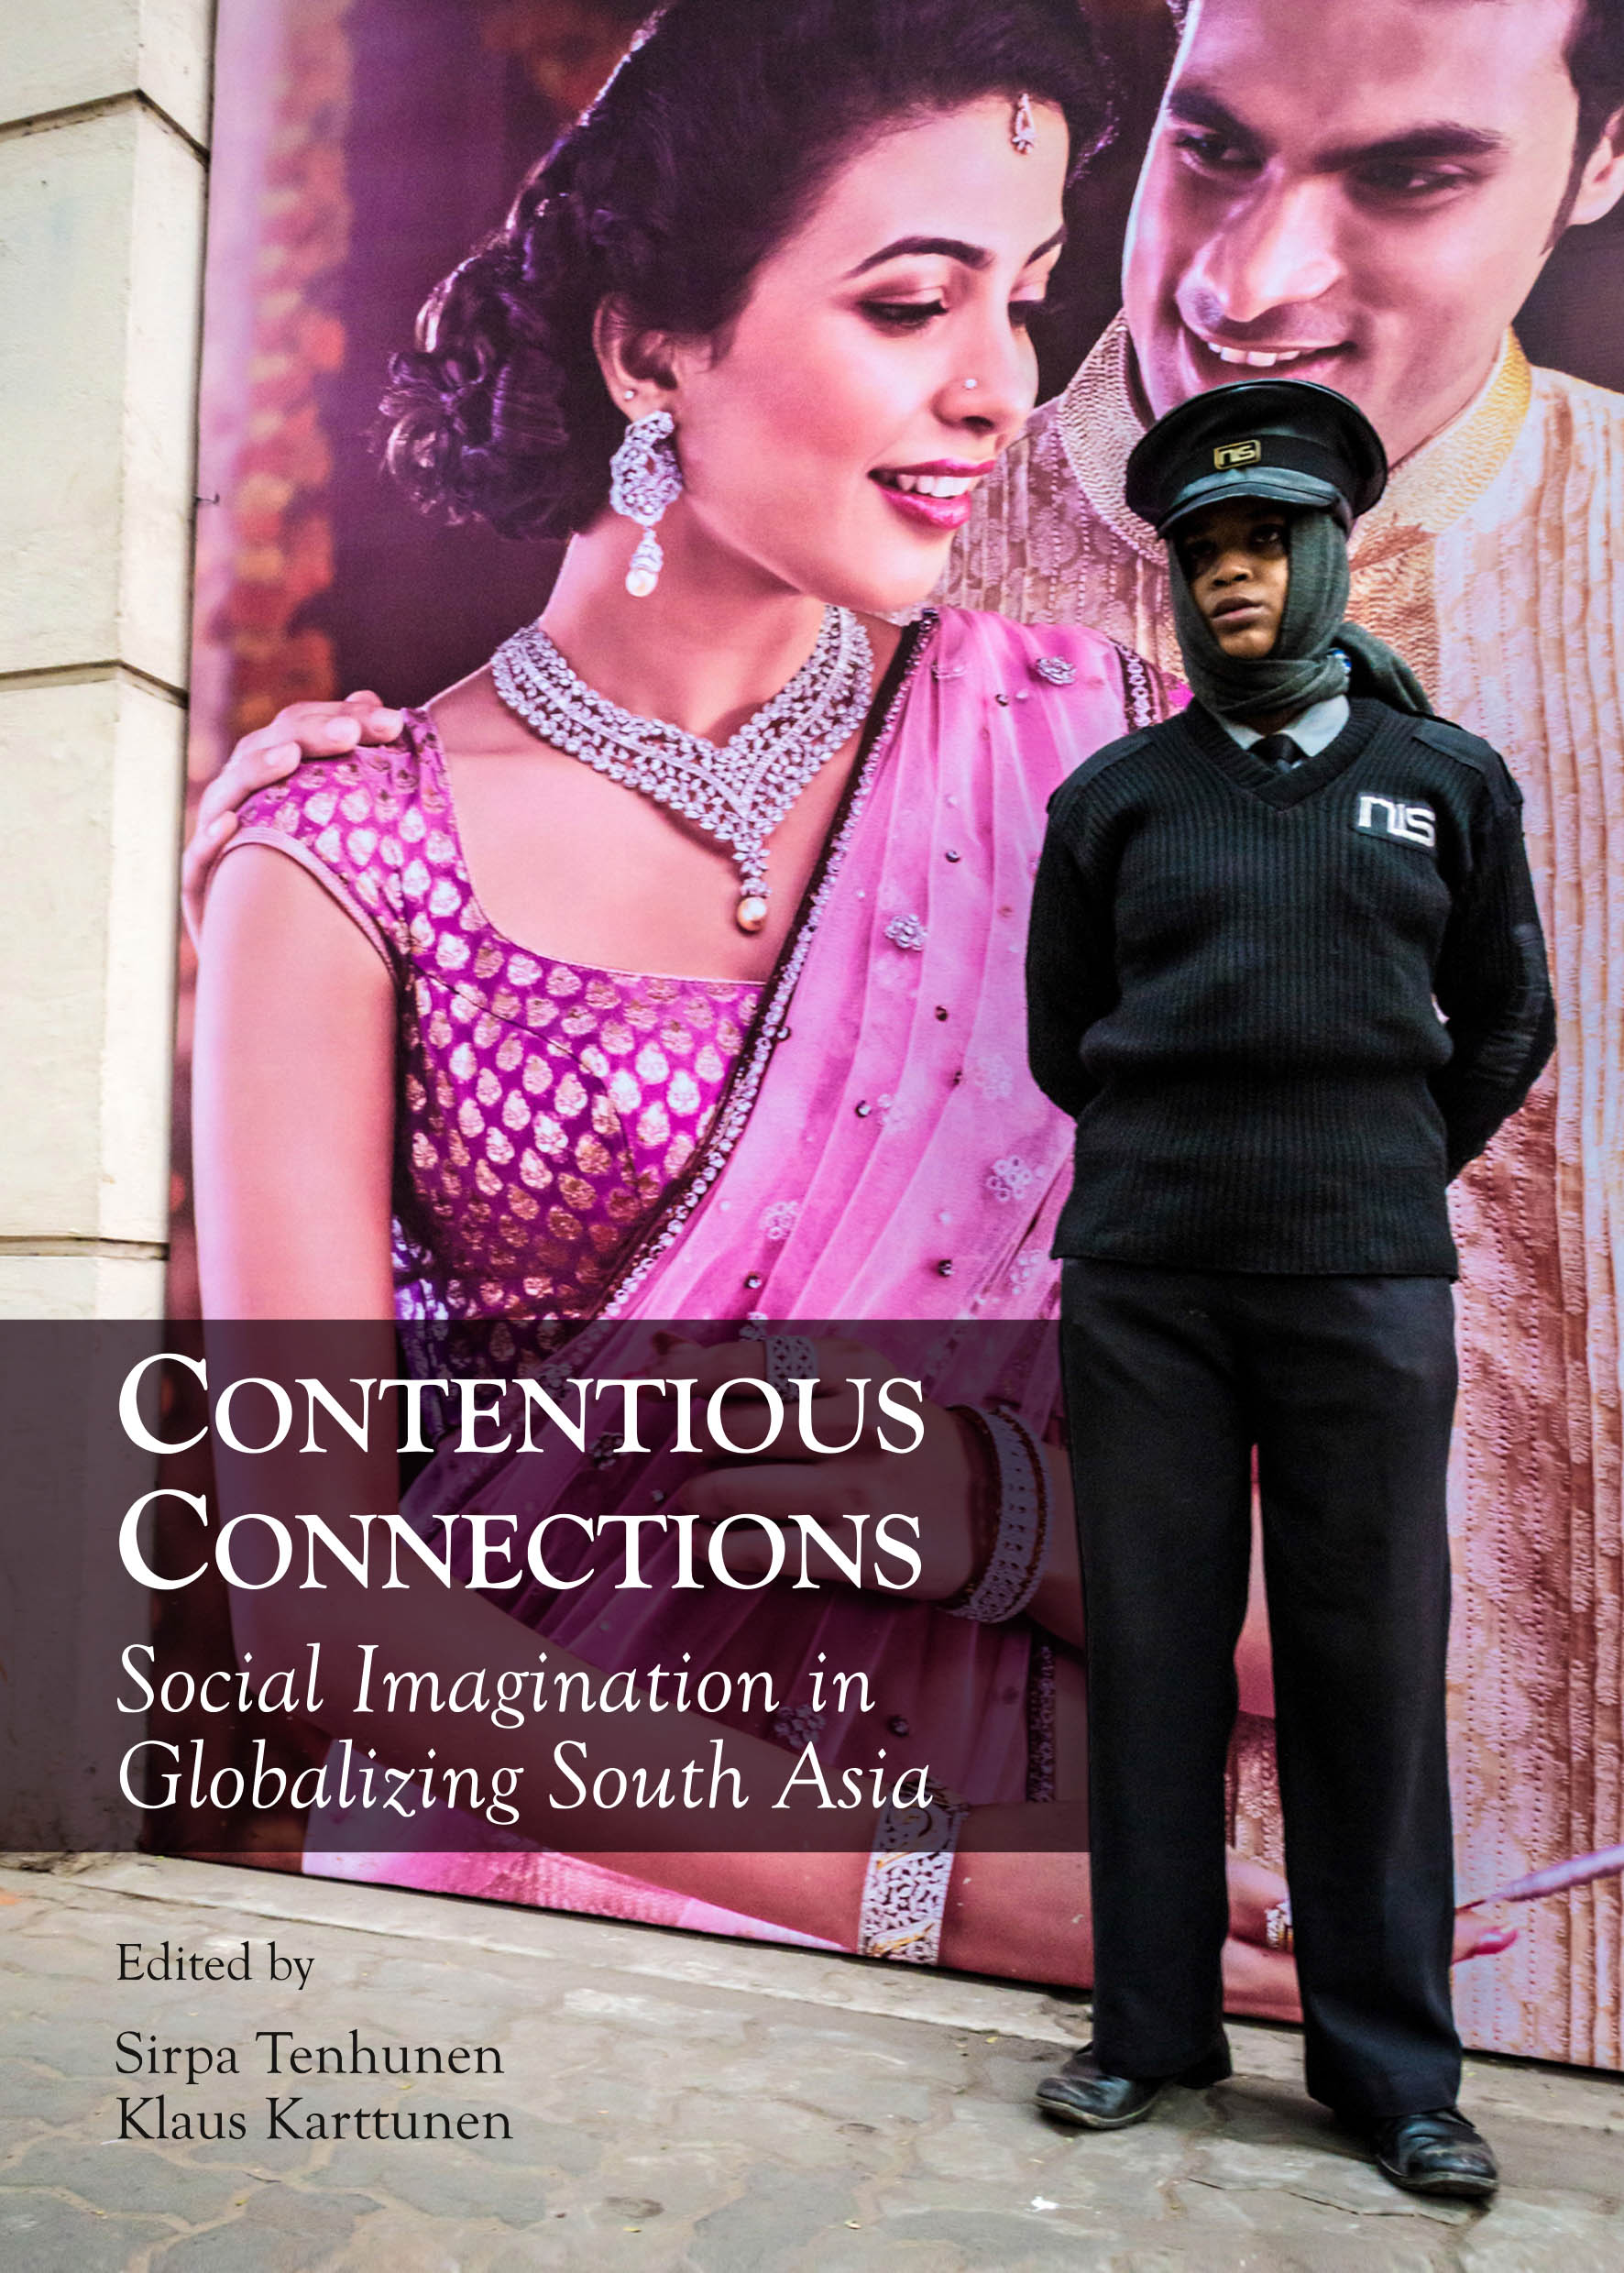 Contentious Connections: Social Imagination in Globalizing South Asia